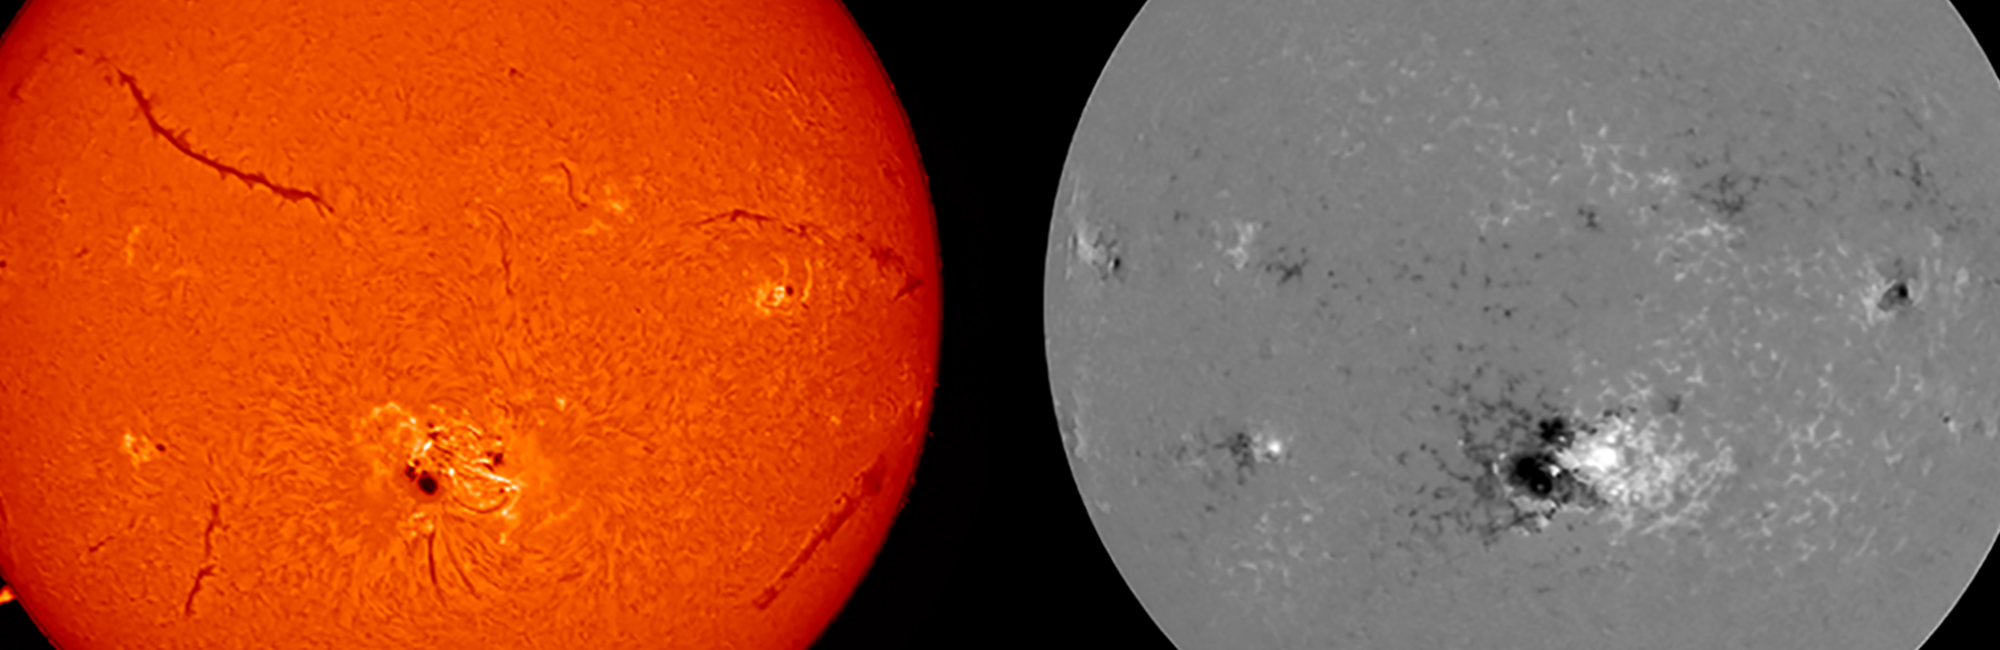 two images of the sun, orance & b/w